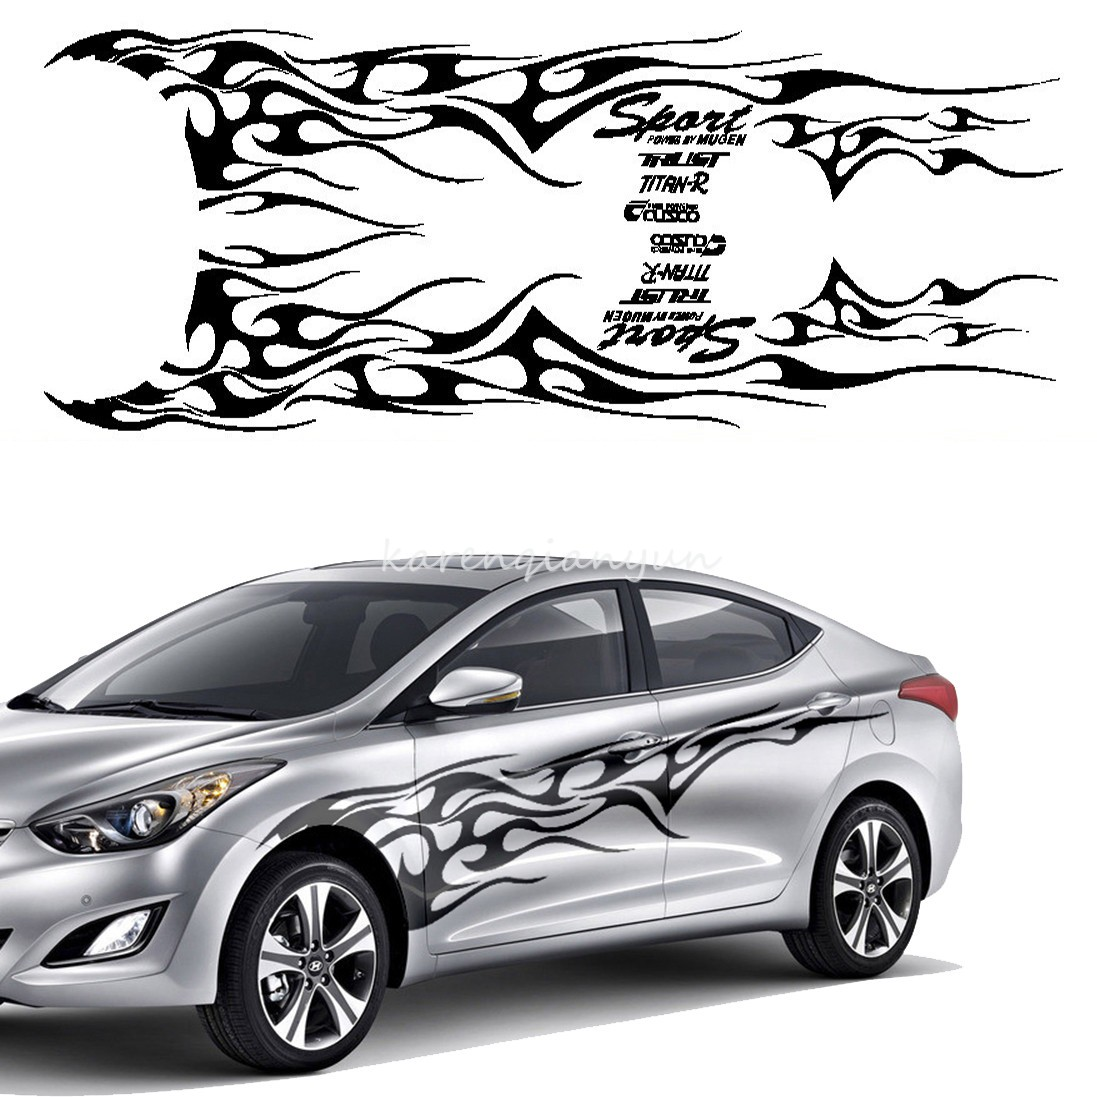 Set Car Truck Flame Totem Graphics Side Decal Vinyl Decal Body - Graphics for the side of a car